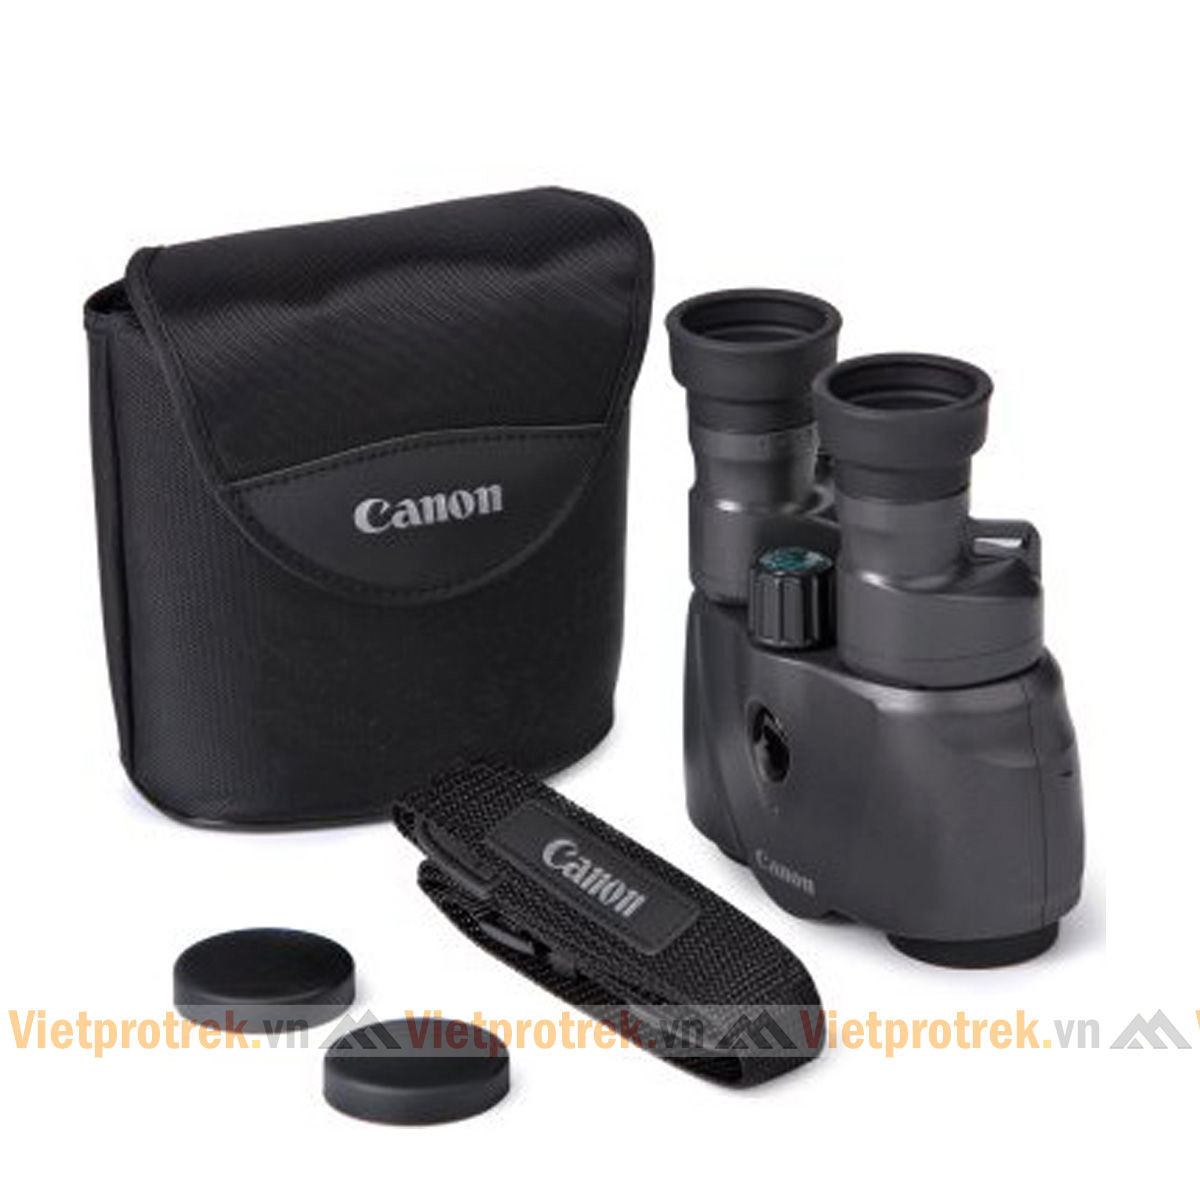 CANON IS 10x30